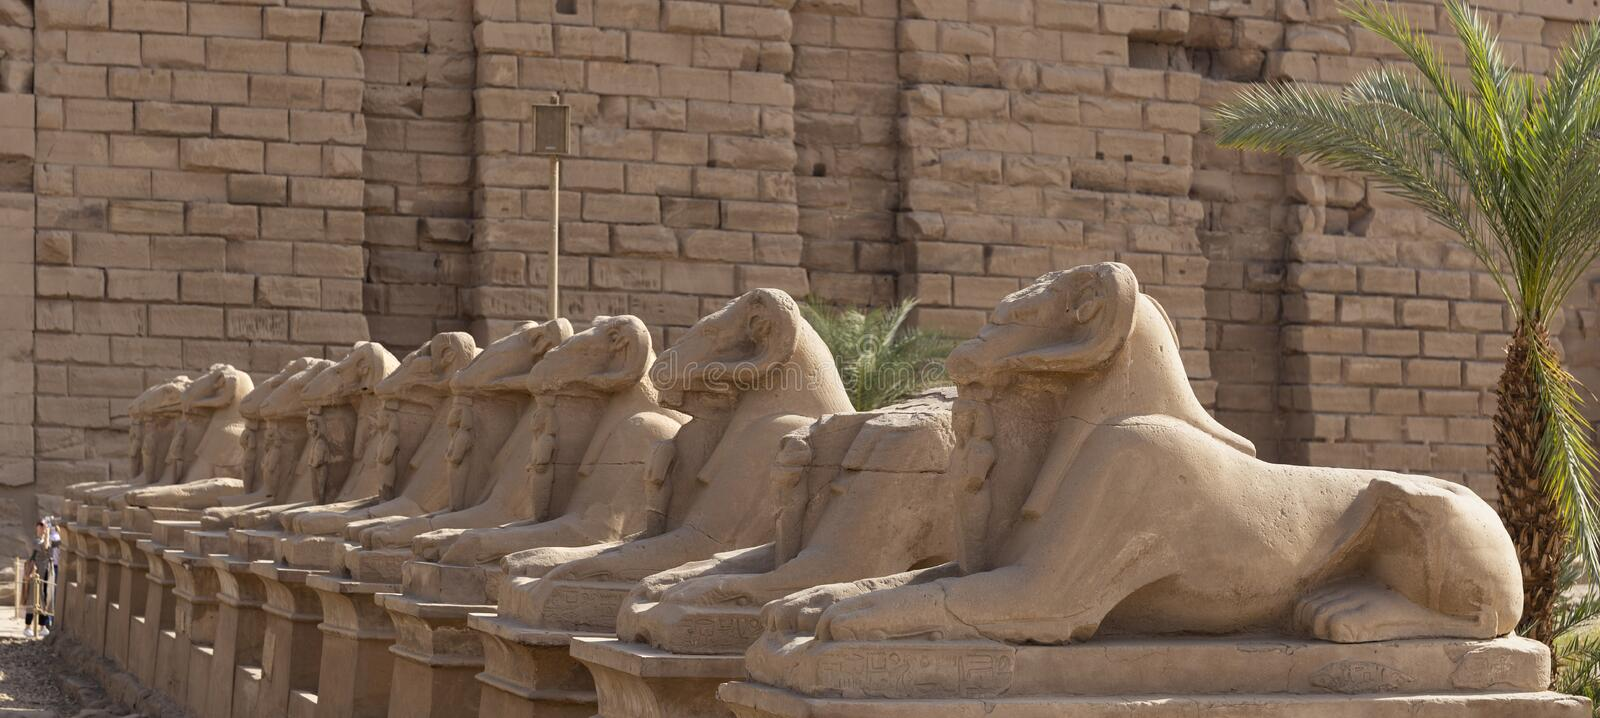 Alley of the ram-headed Sphinxes. Karnak Temple, complex of Amun-Re. Luxor, Egypt stock photo